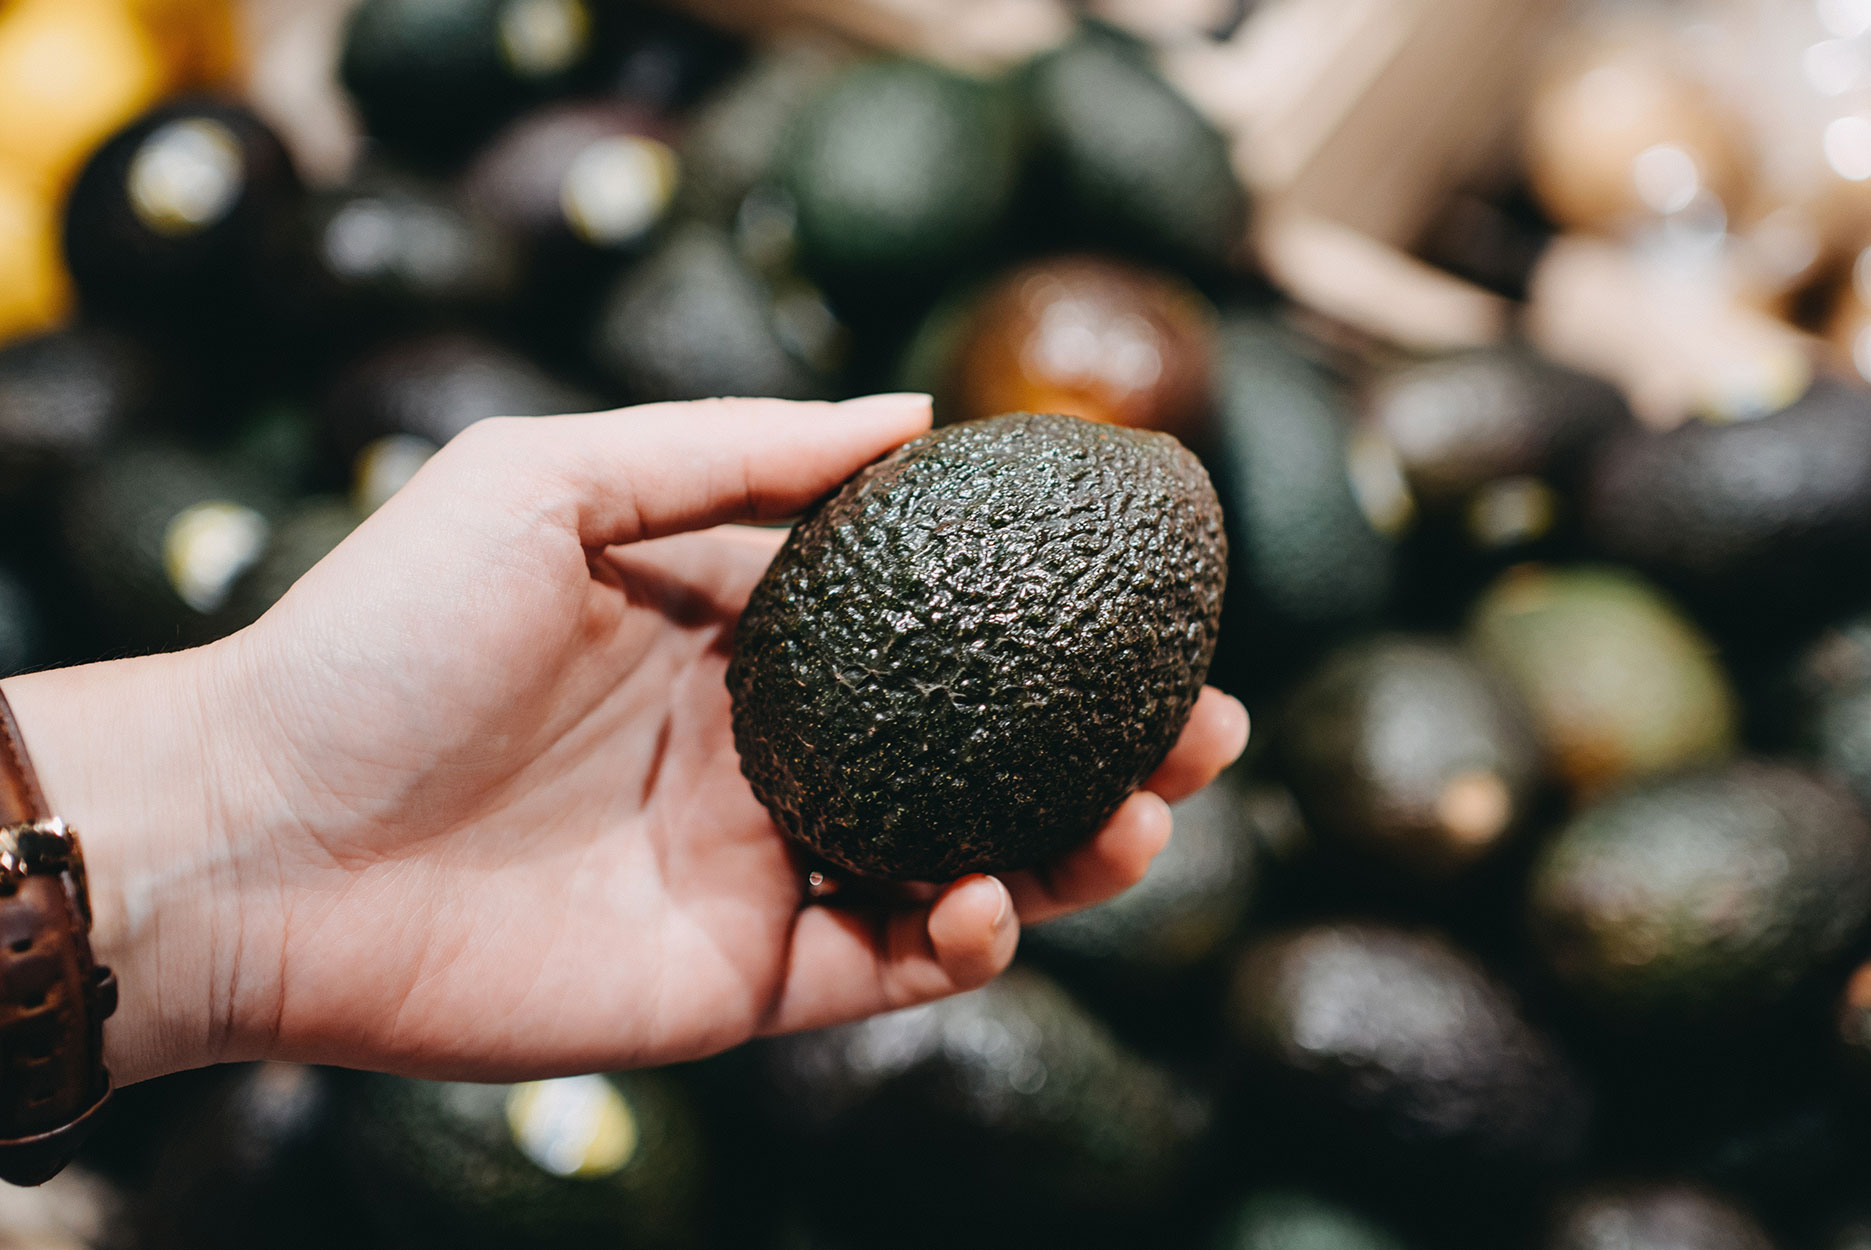 Woman shopping for fresh fruit and vegetables in supermarket, close up of her hand choosing avocados